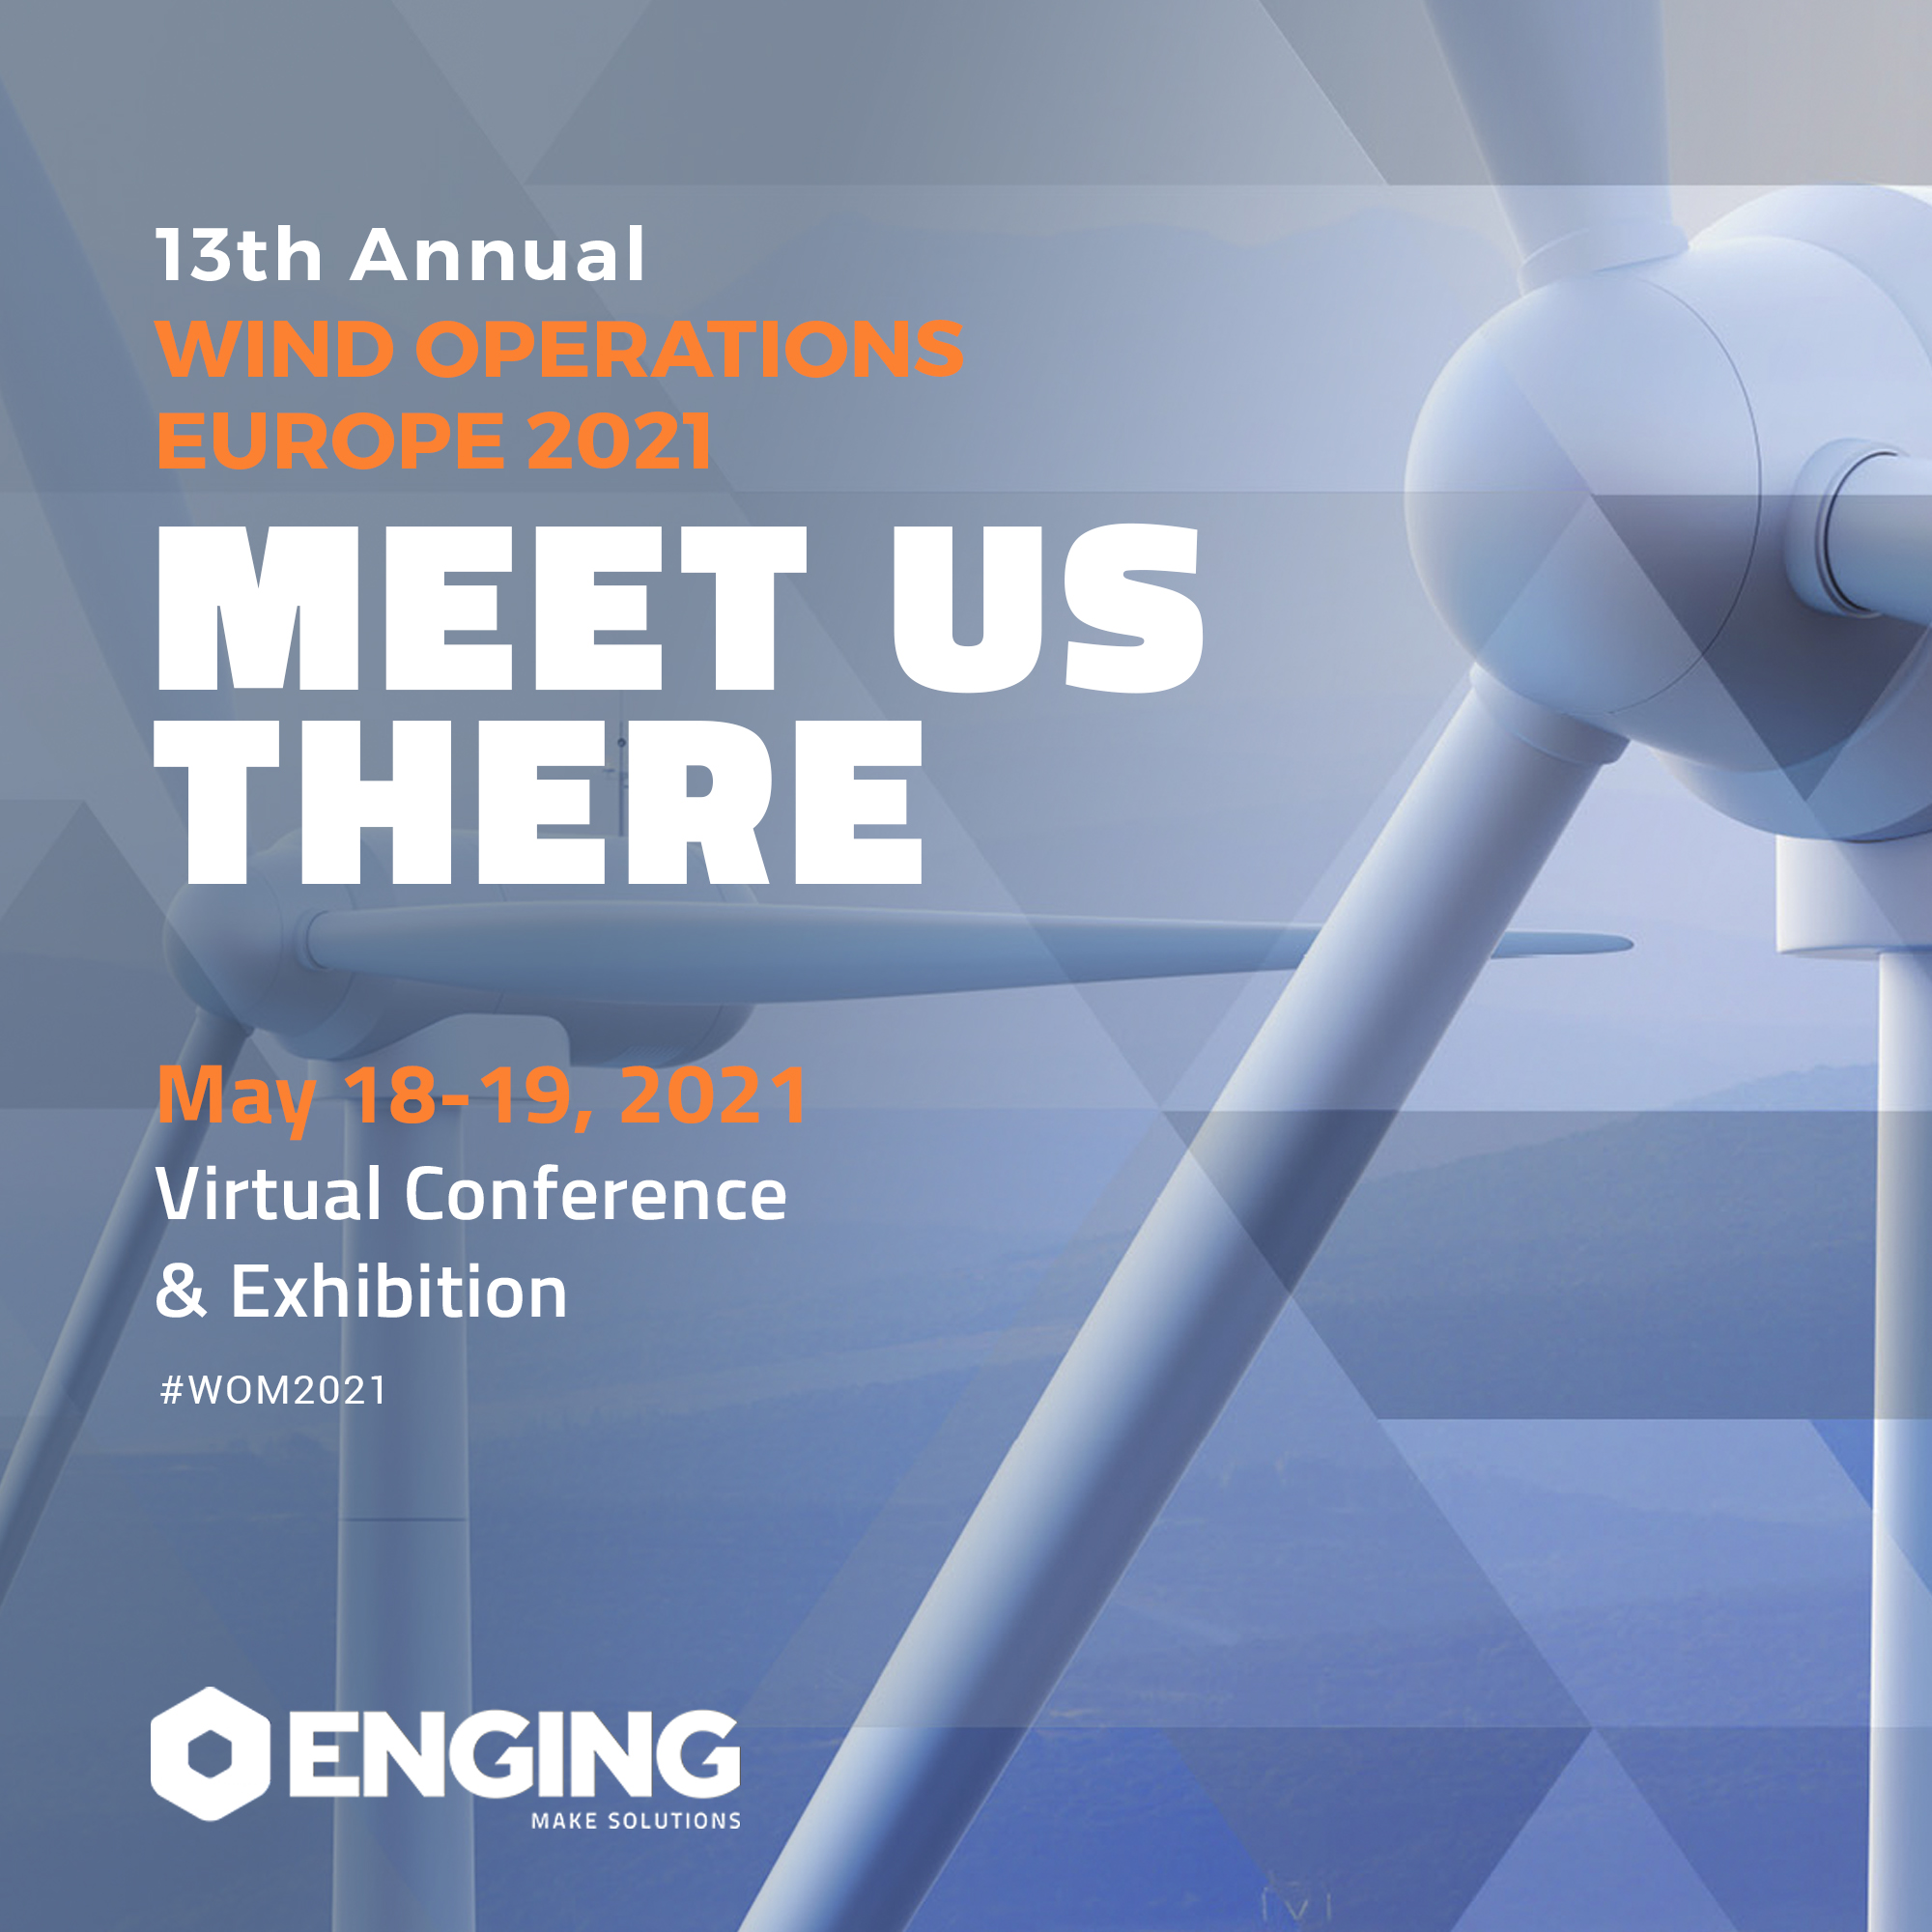 Wind Operations Europe 2021